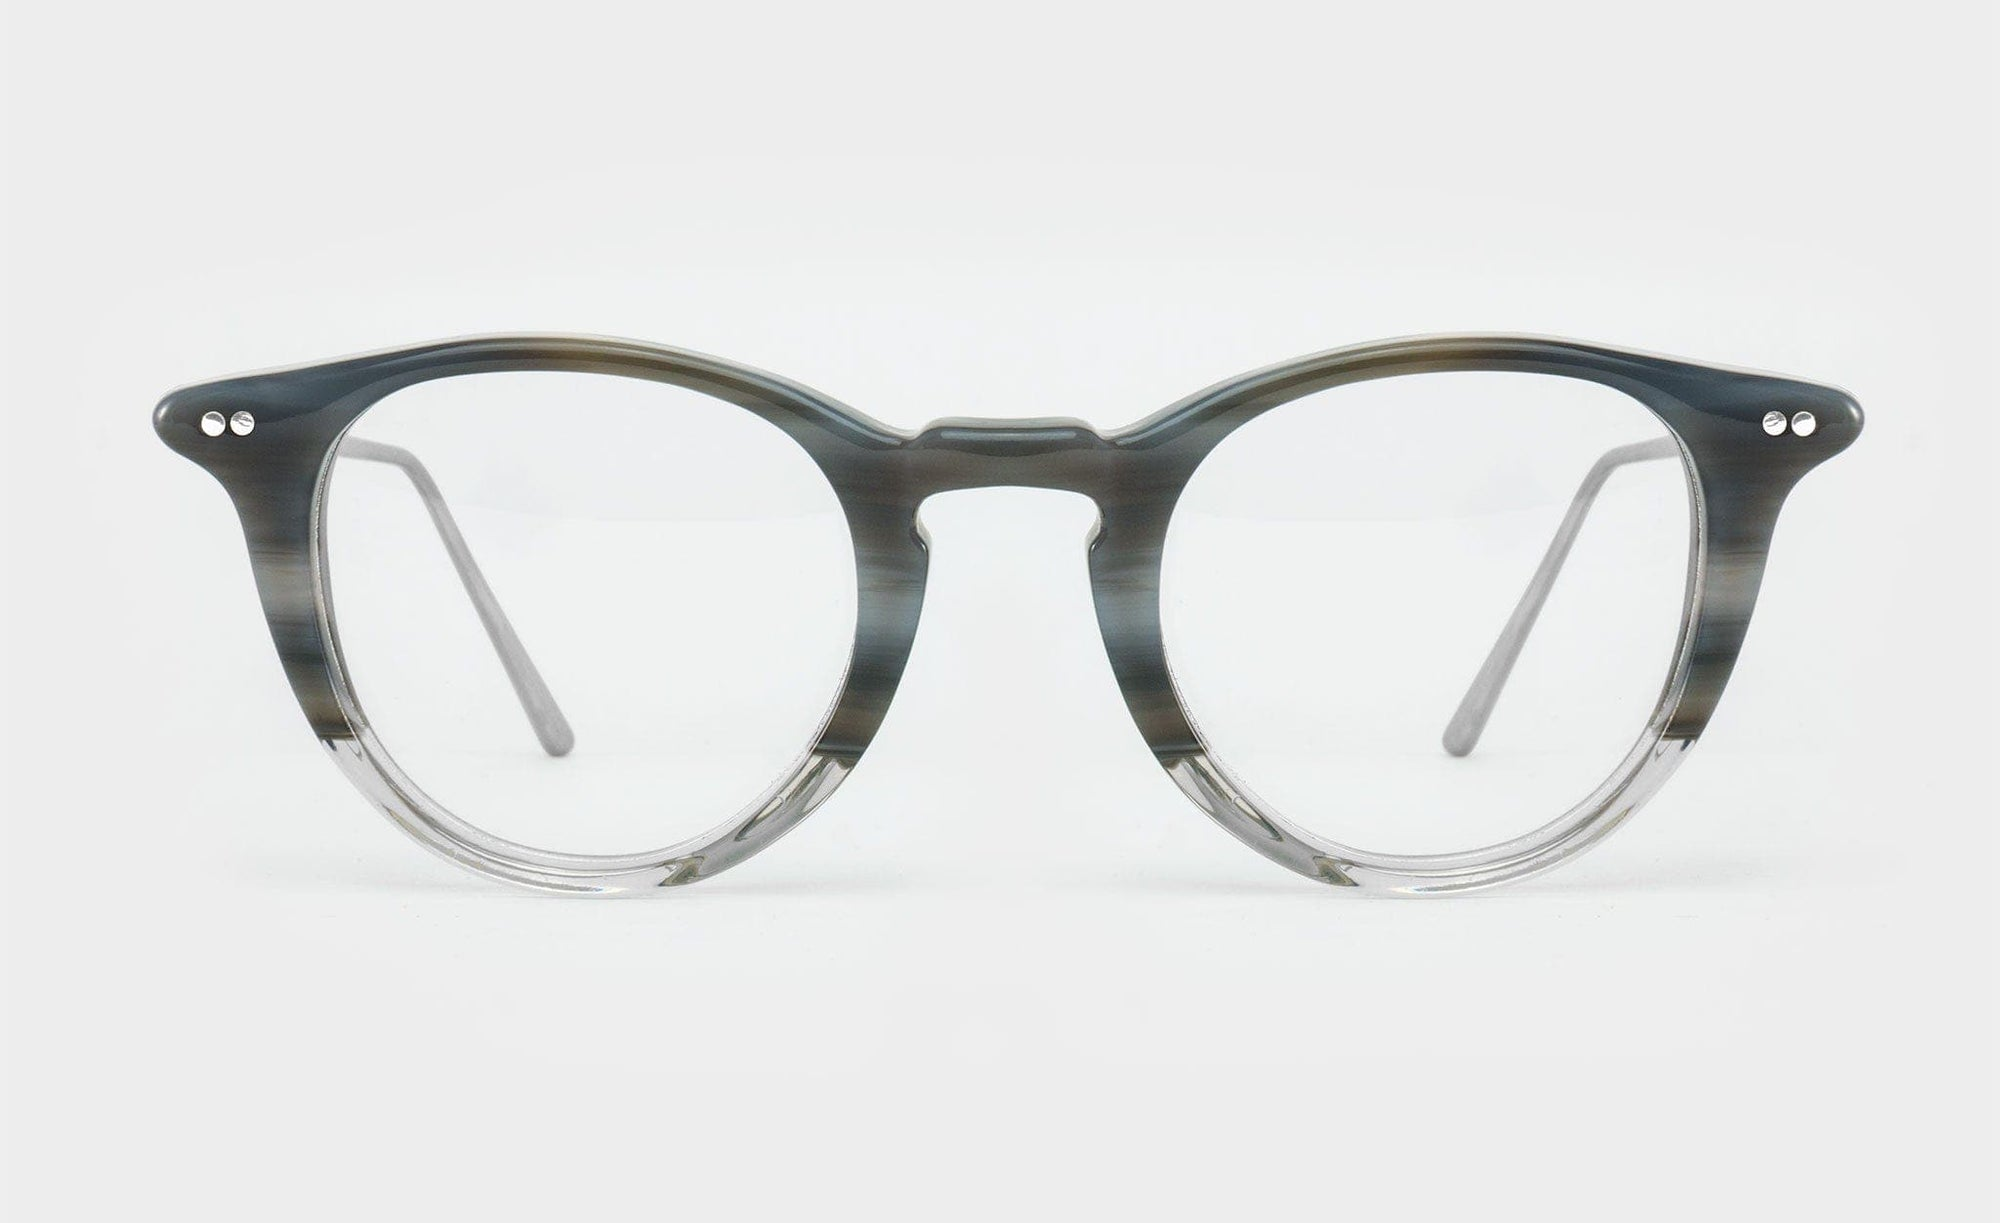 Optical glasses frame d mst